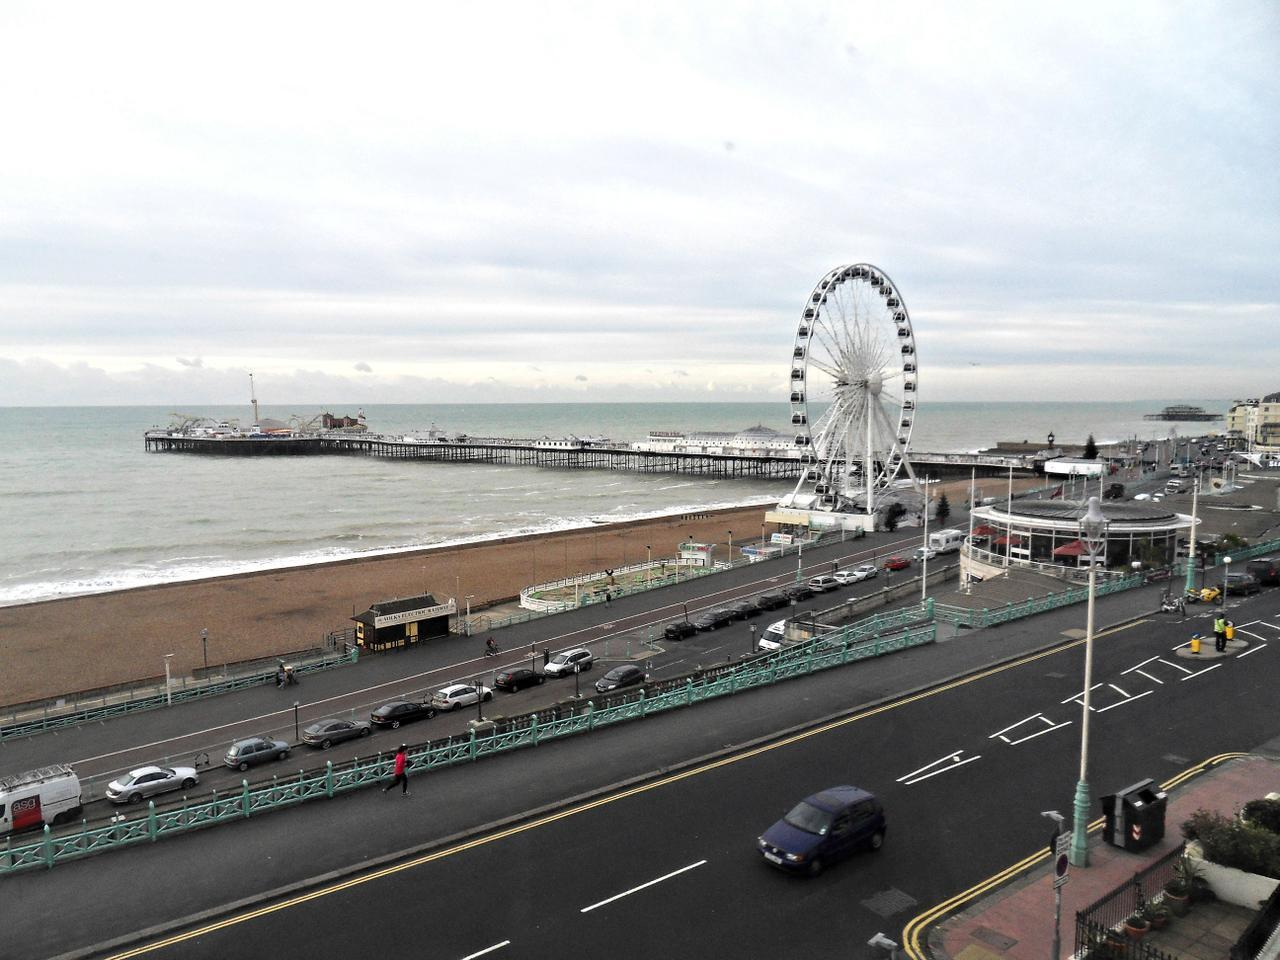 Pier View, Brighton & Hove Images - 5